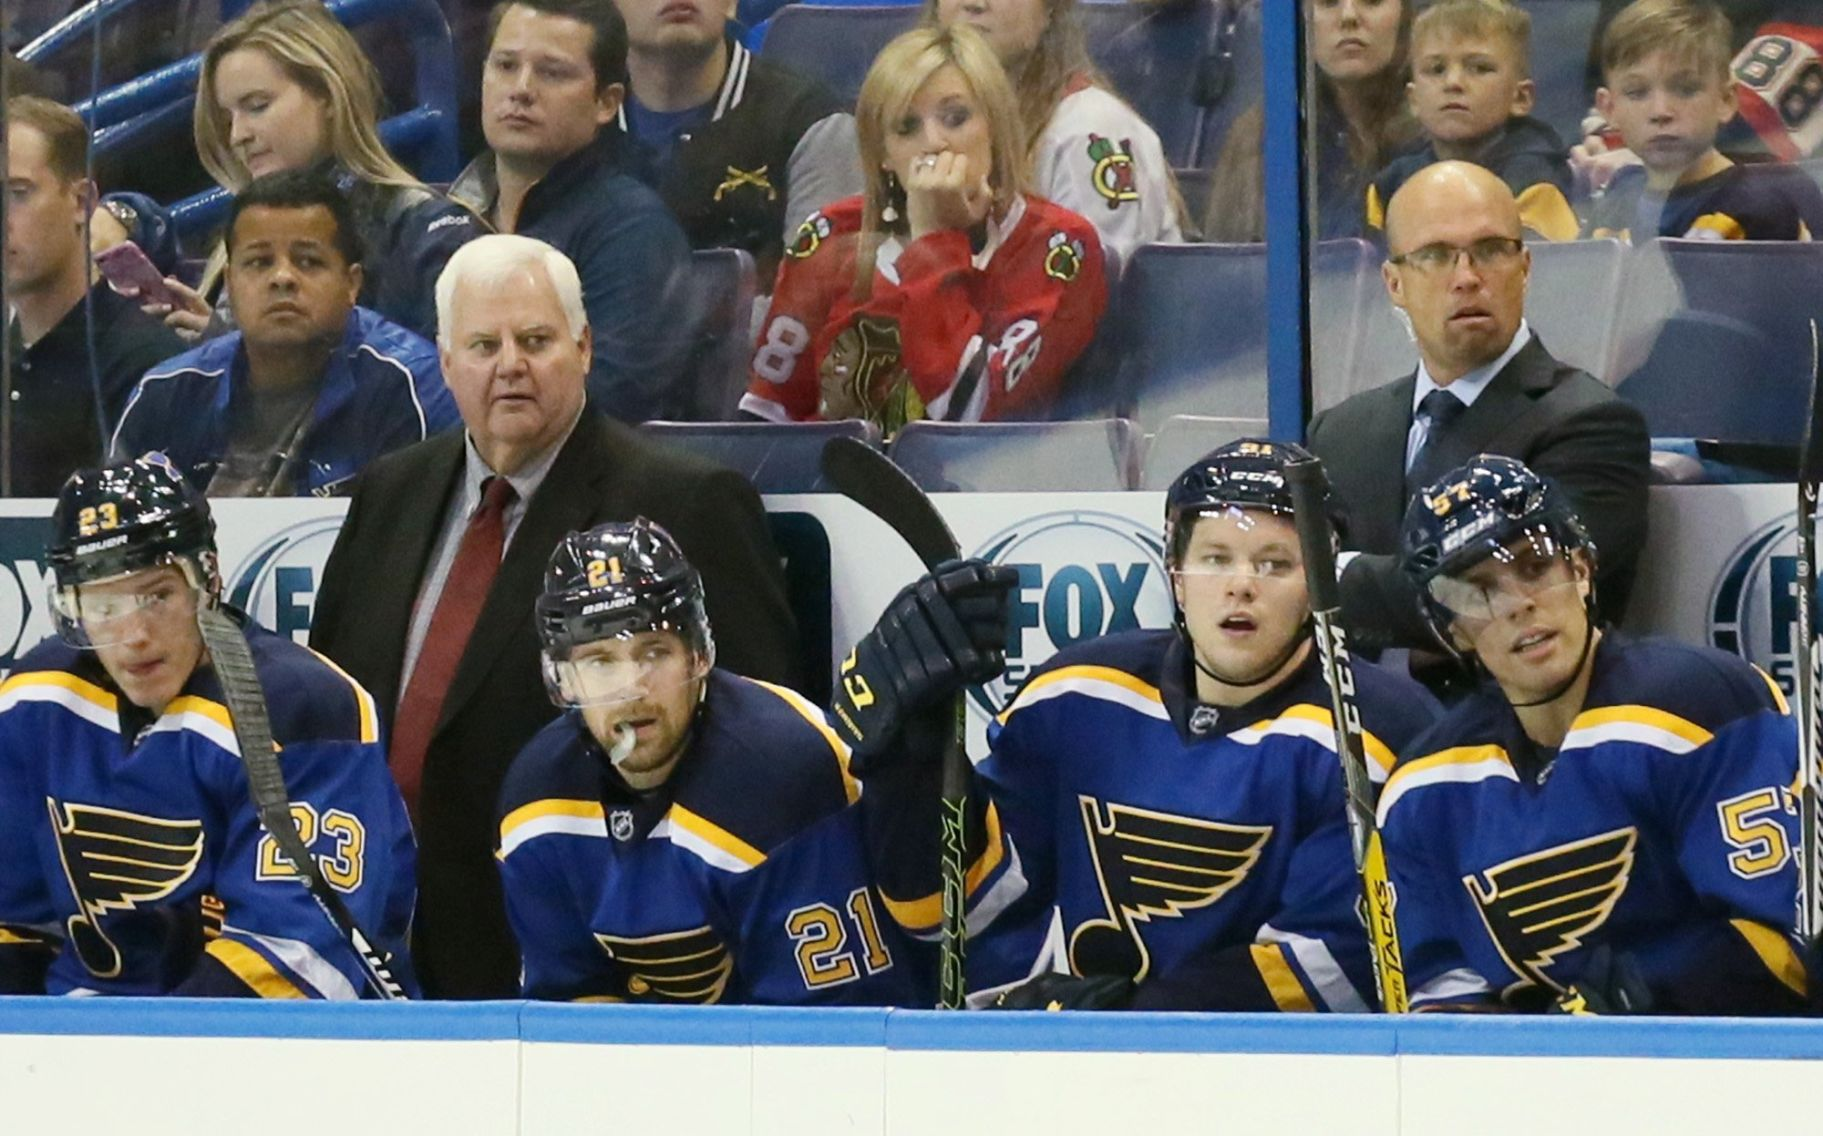 #STLBlues win their home opener after quick start